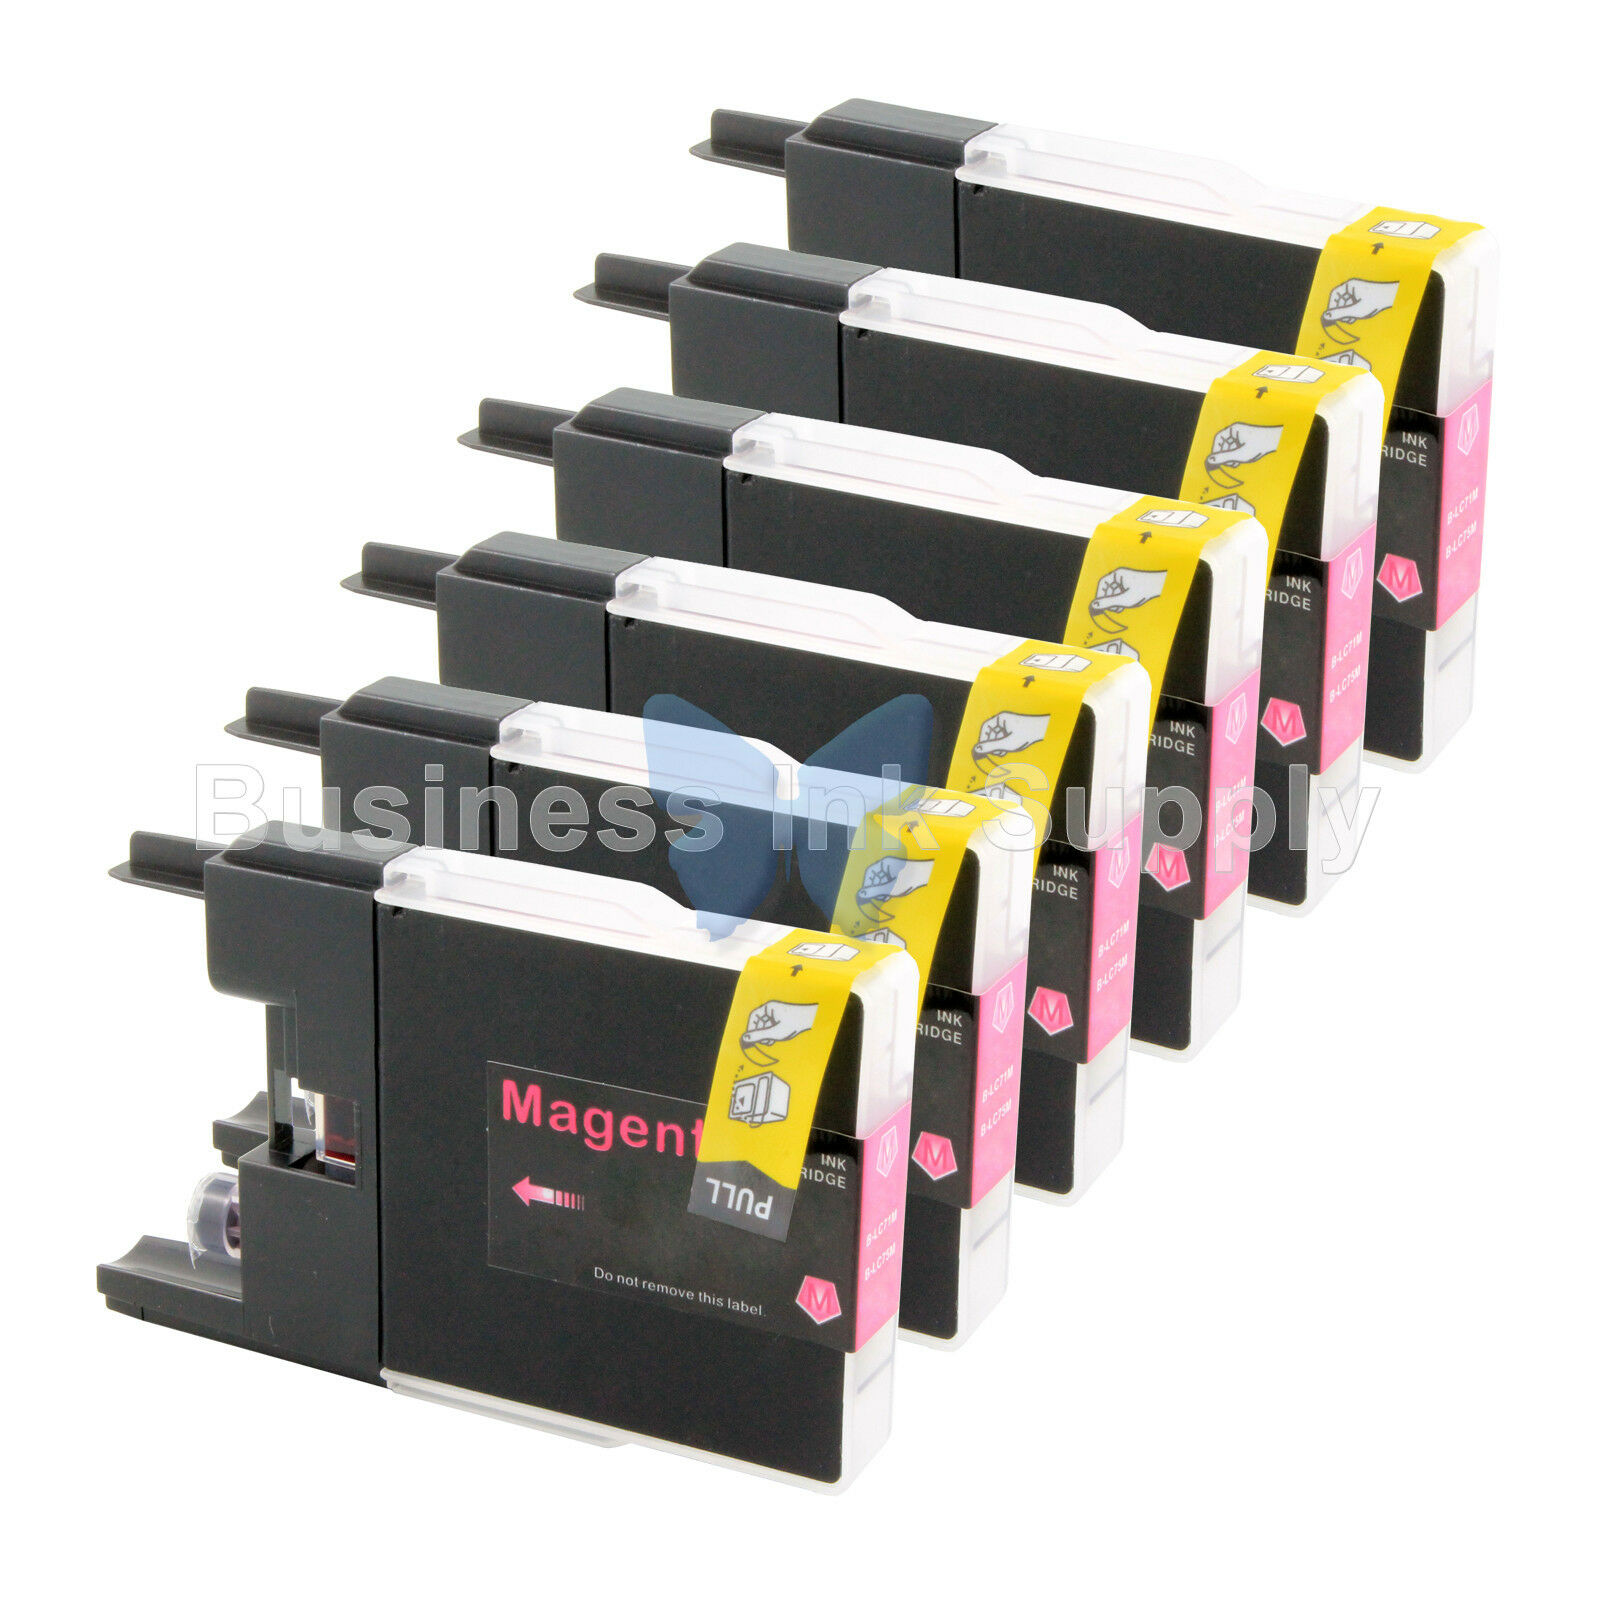 6510 MG Compatible Inkjet Cartridges etc; Magenta Ink: CLC75M Replacement for Brother LC75M; Models: MFC J430 430W